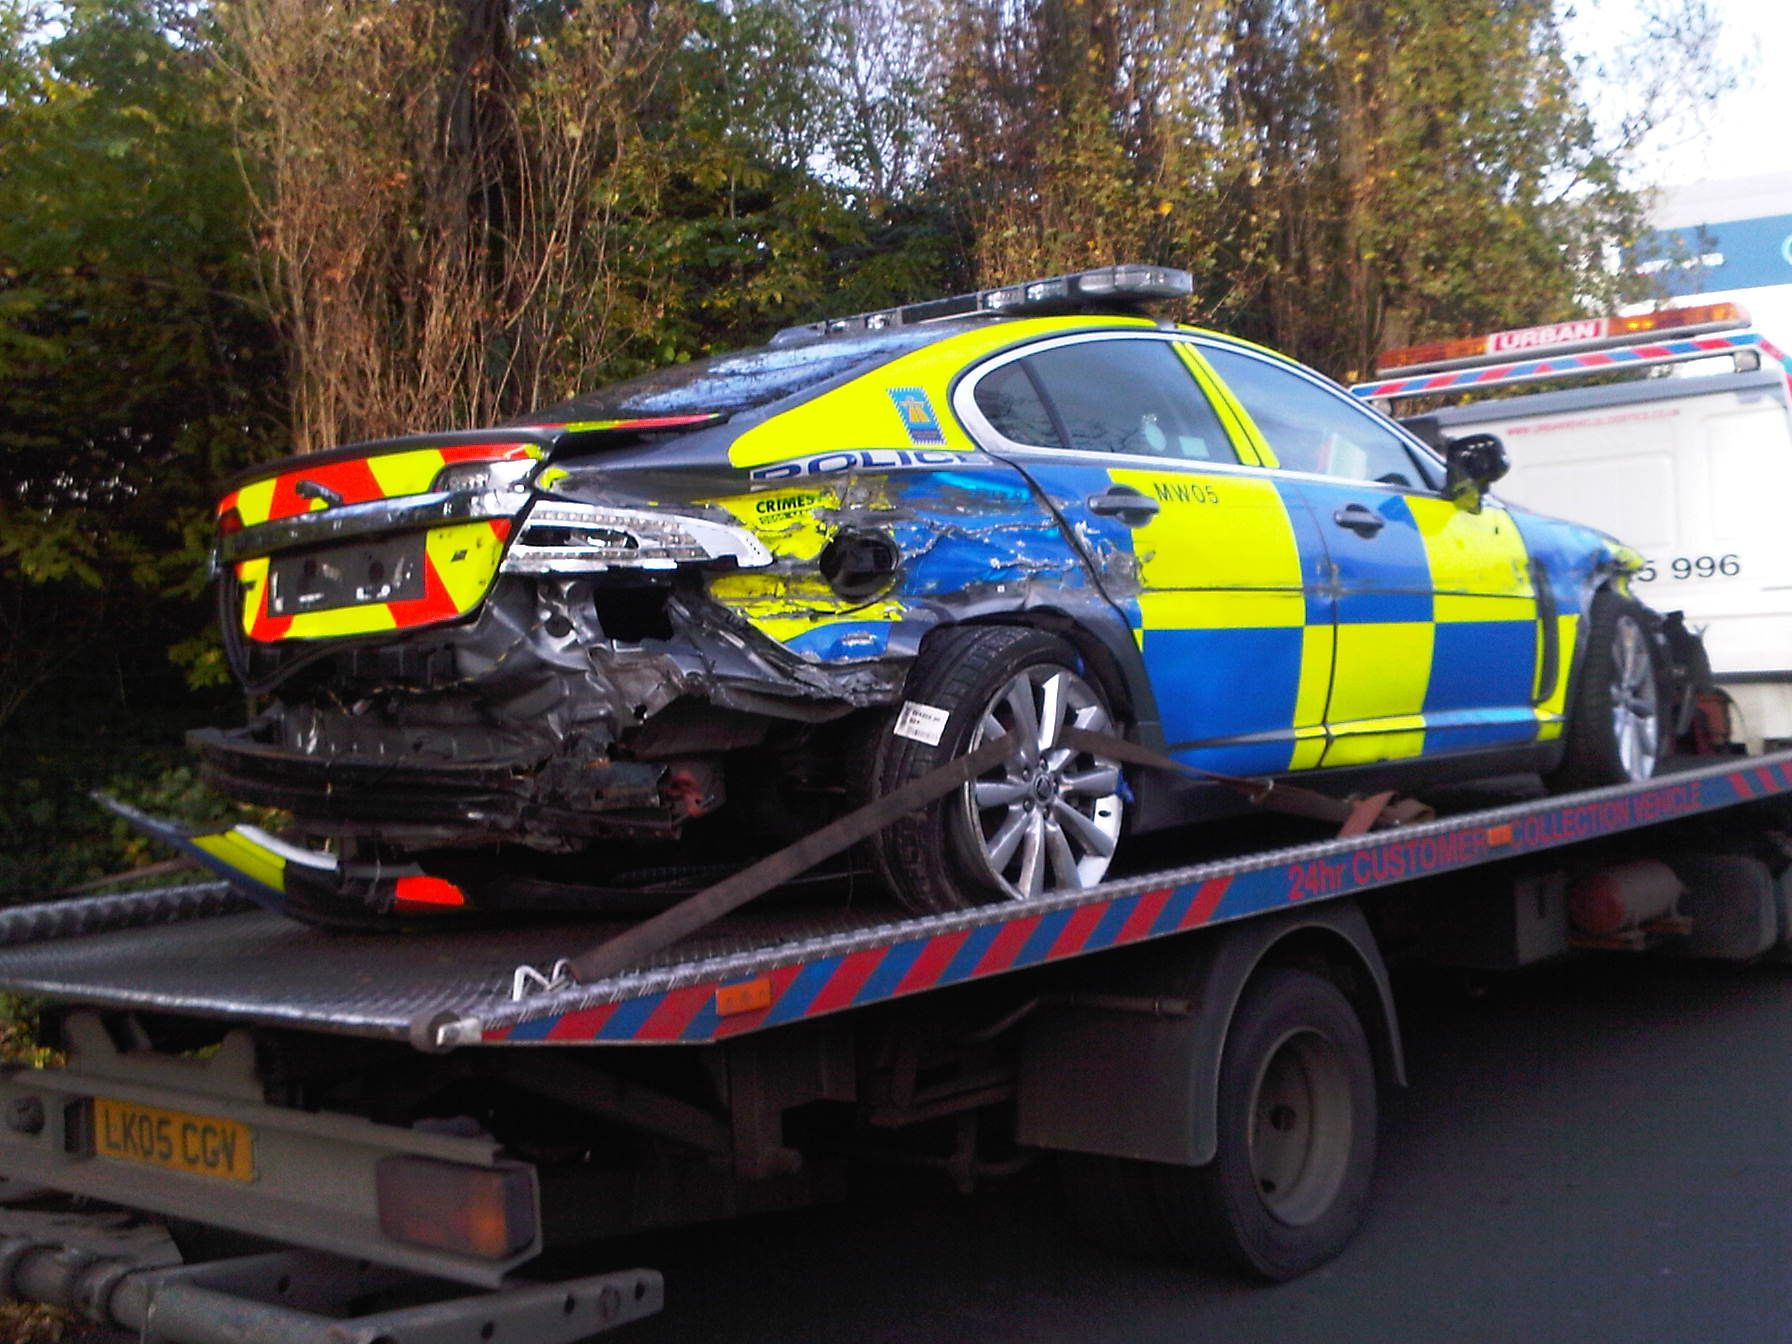 Wrecked Police Car In High Speed Pursuit Www Essexscrapandsalvage Co